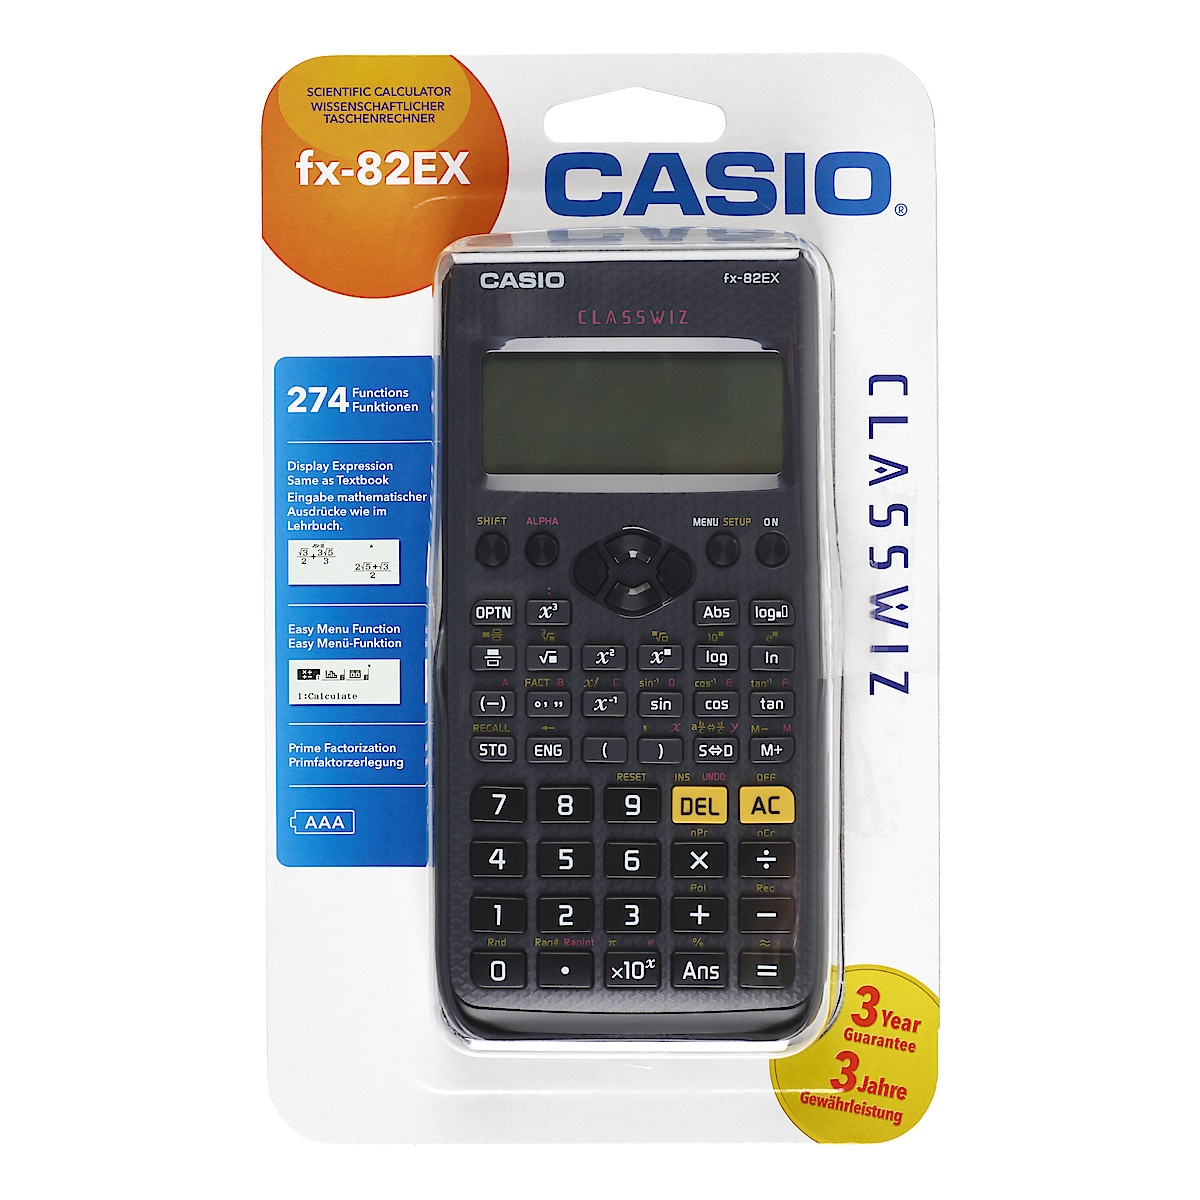 Casio fx-82EX - Highlights - YouTube